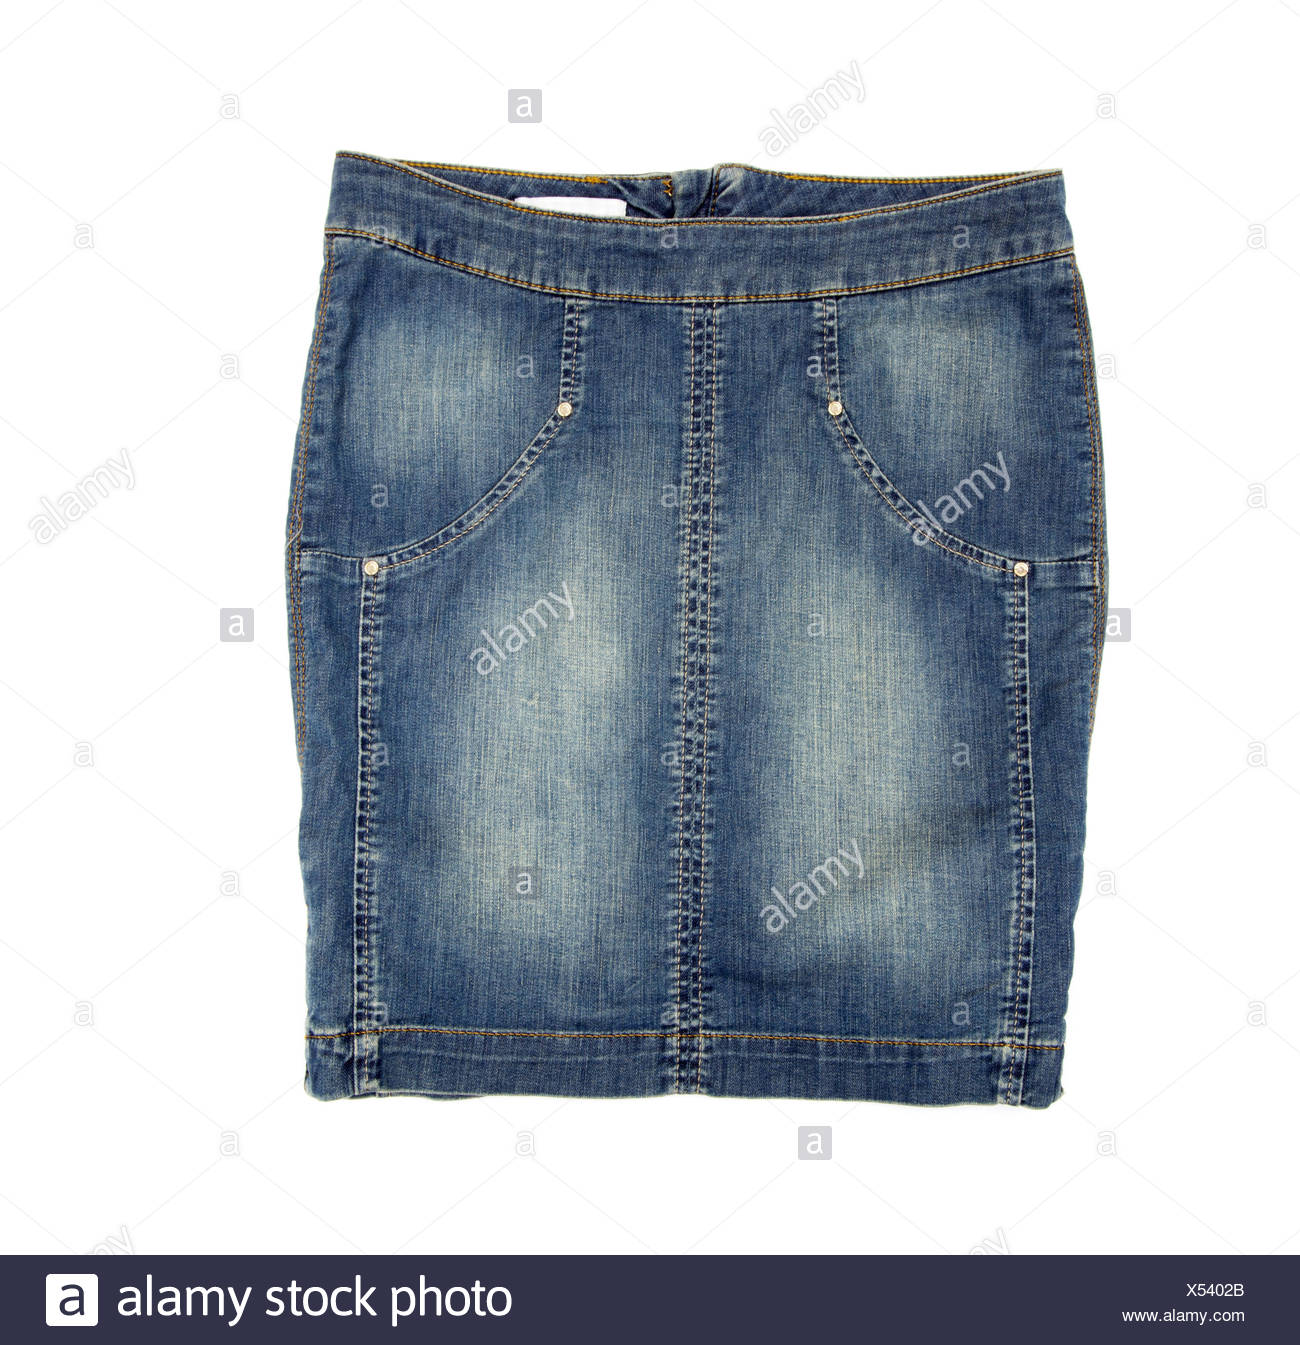 Jean skirt isolated on white background - Stock Image